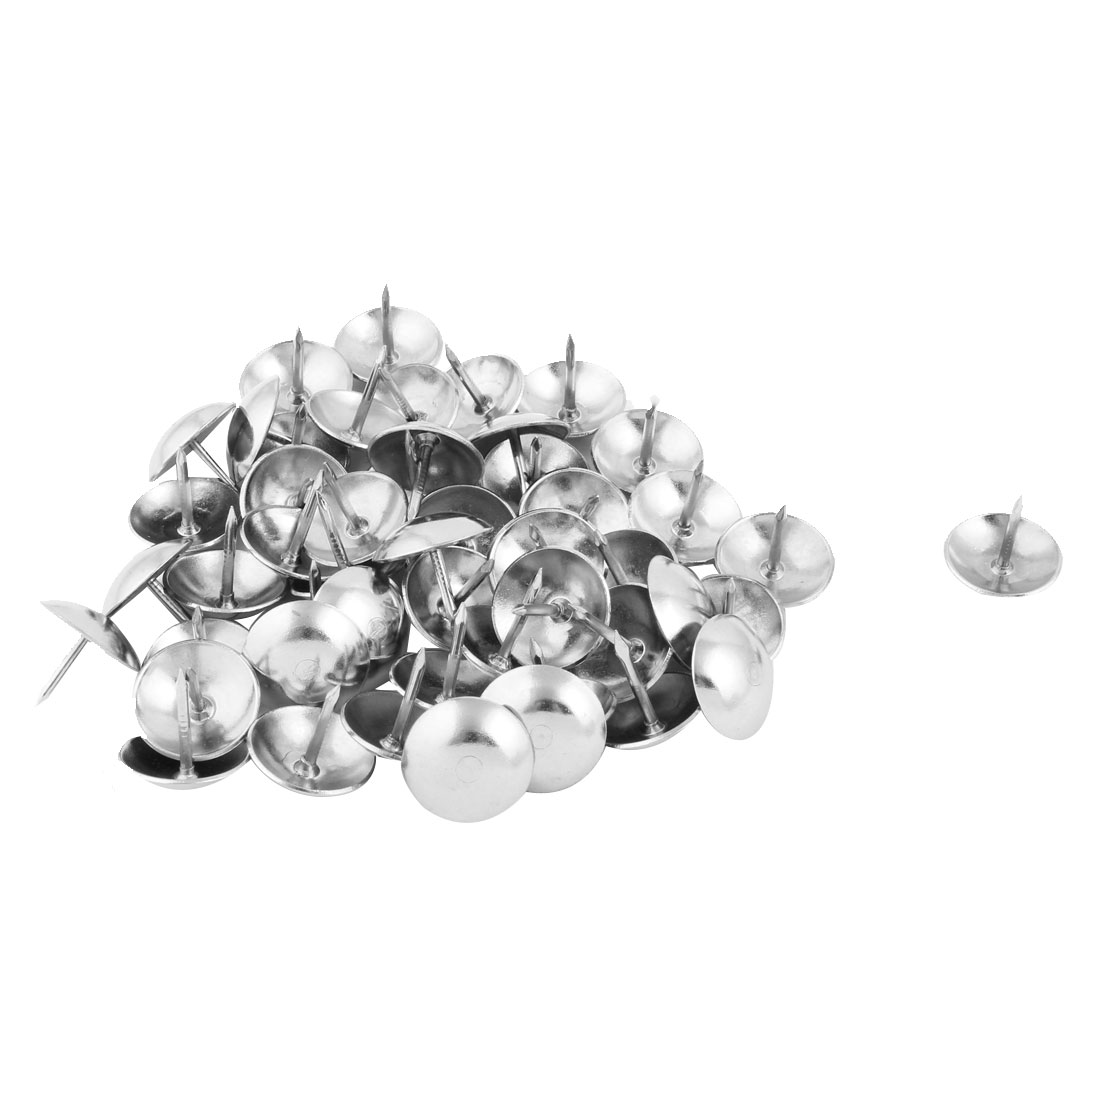 Home Furniture Accessory Metal Pushpin Tack Nail Silver Tone 16 x 15mm 50pcs